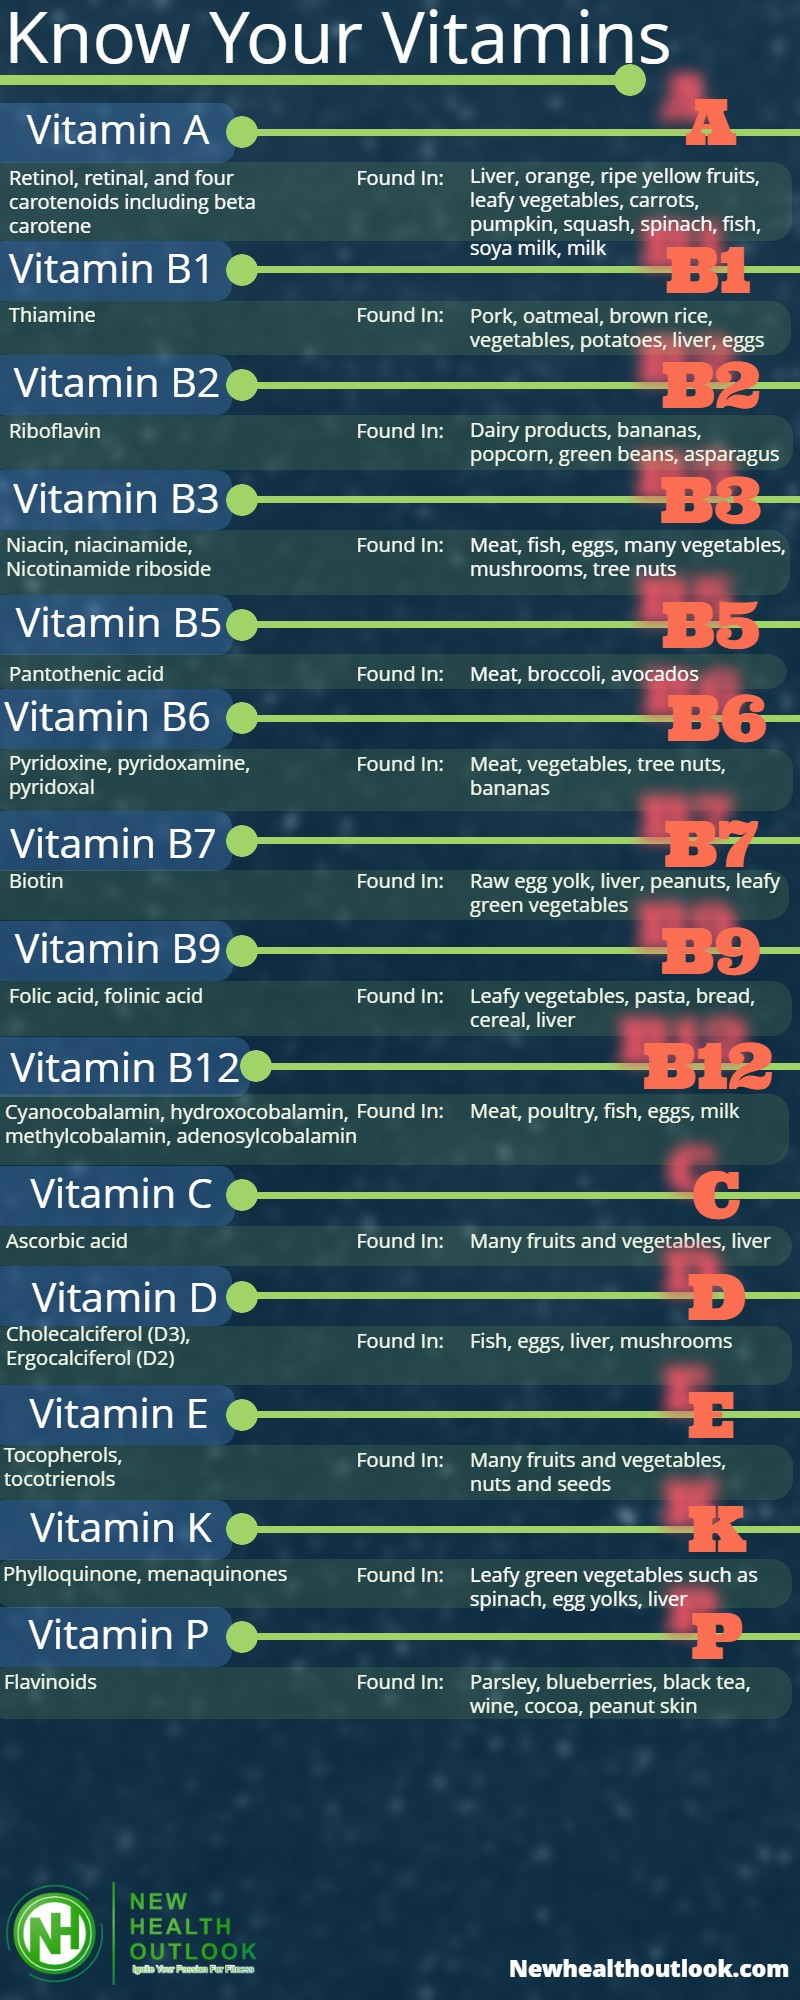 Know your vitamins